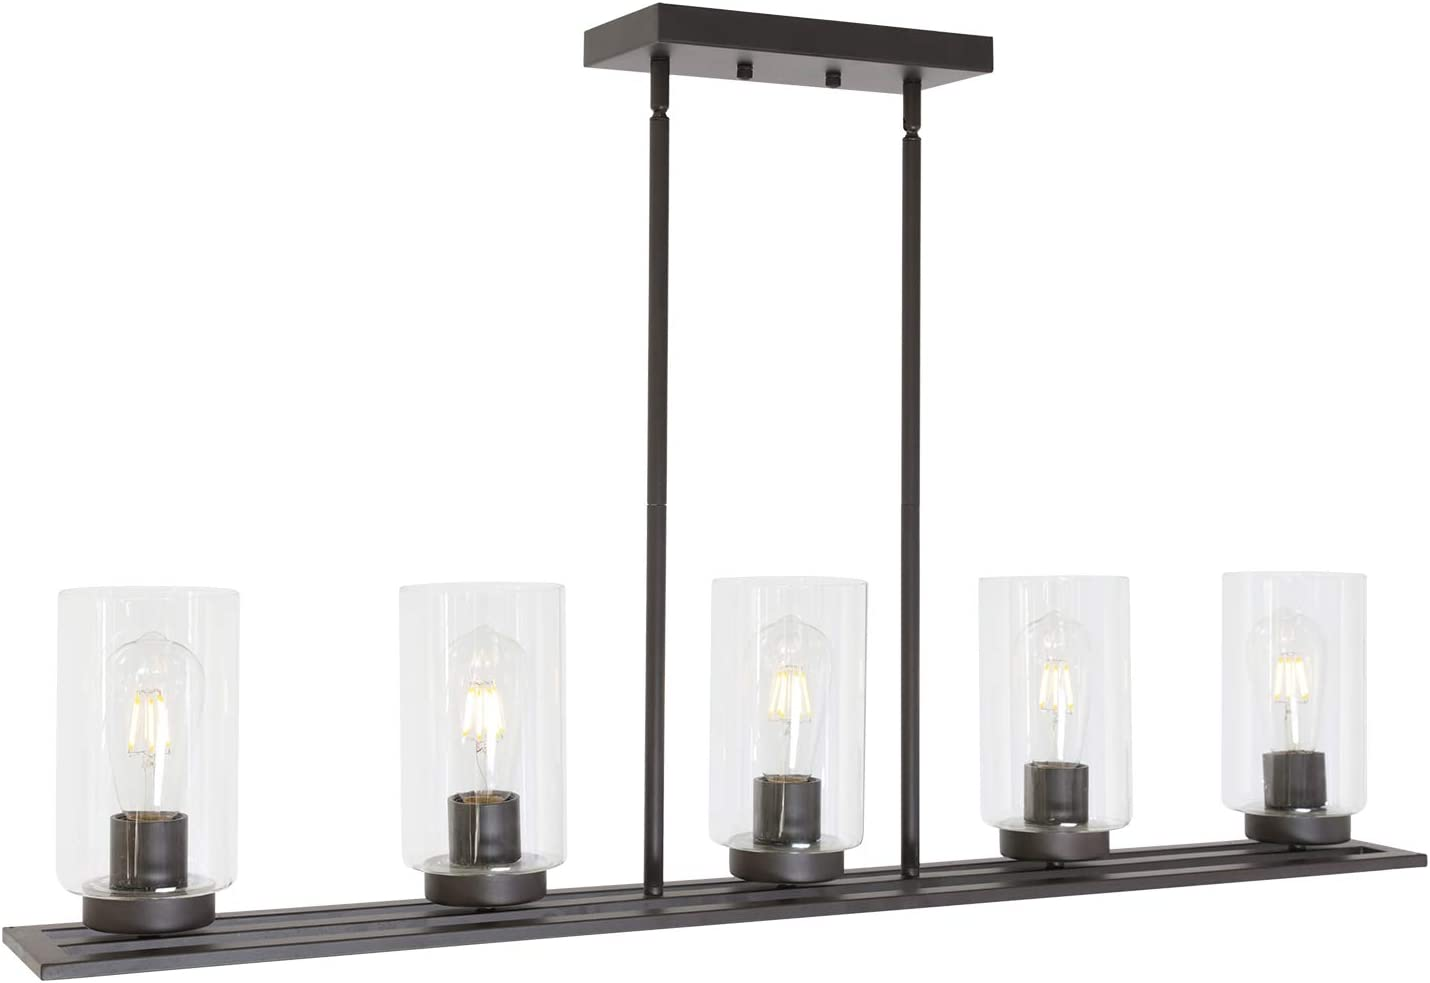 Lucidce 5 Lights Contemporary Chandeliers Pendant Lighting Dining Room Lighting Fixtures Hanging Oil Rubbed Bronze for Kitchen Island with Clear Glass Shades Linear